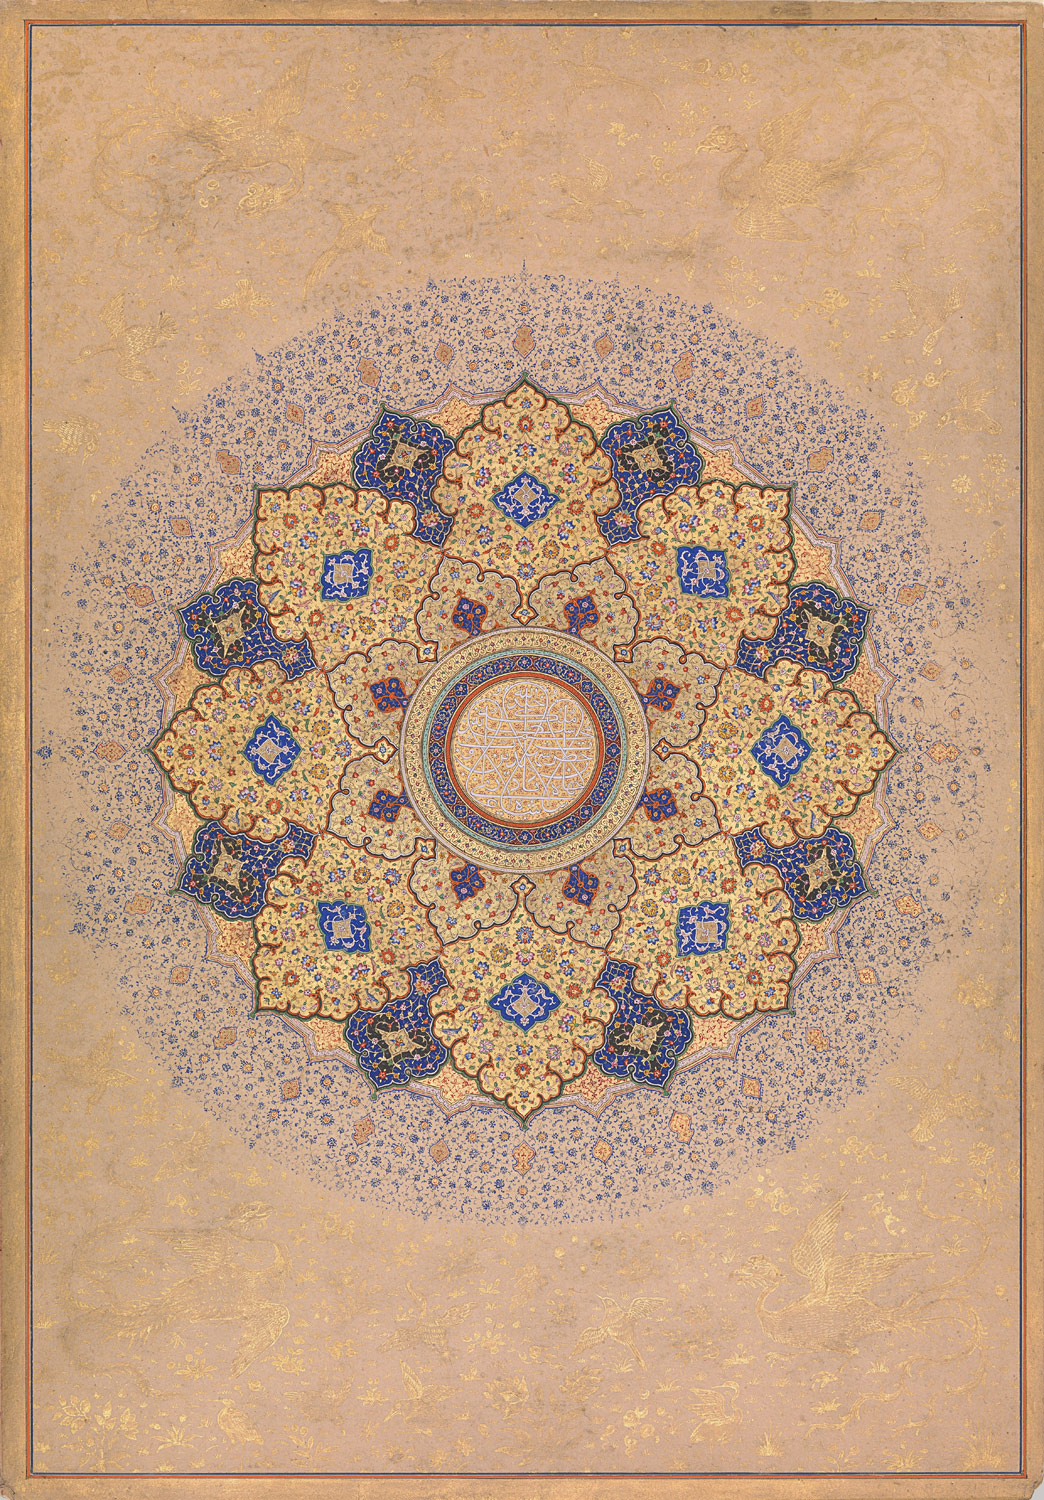 Rosette Bearing the Names and Titles of Shah Jahan, Folio from the Shah Jahan Album